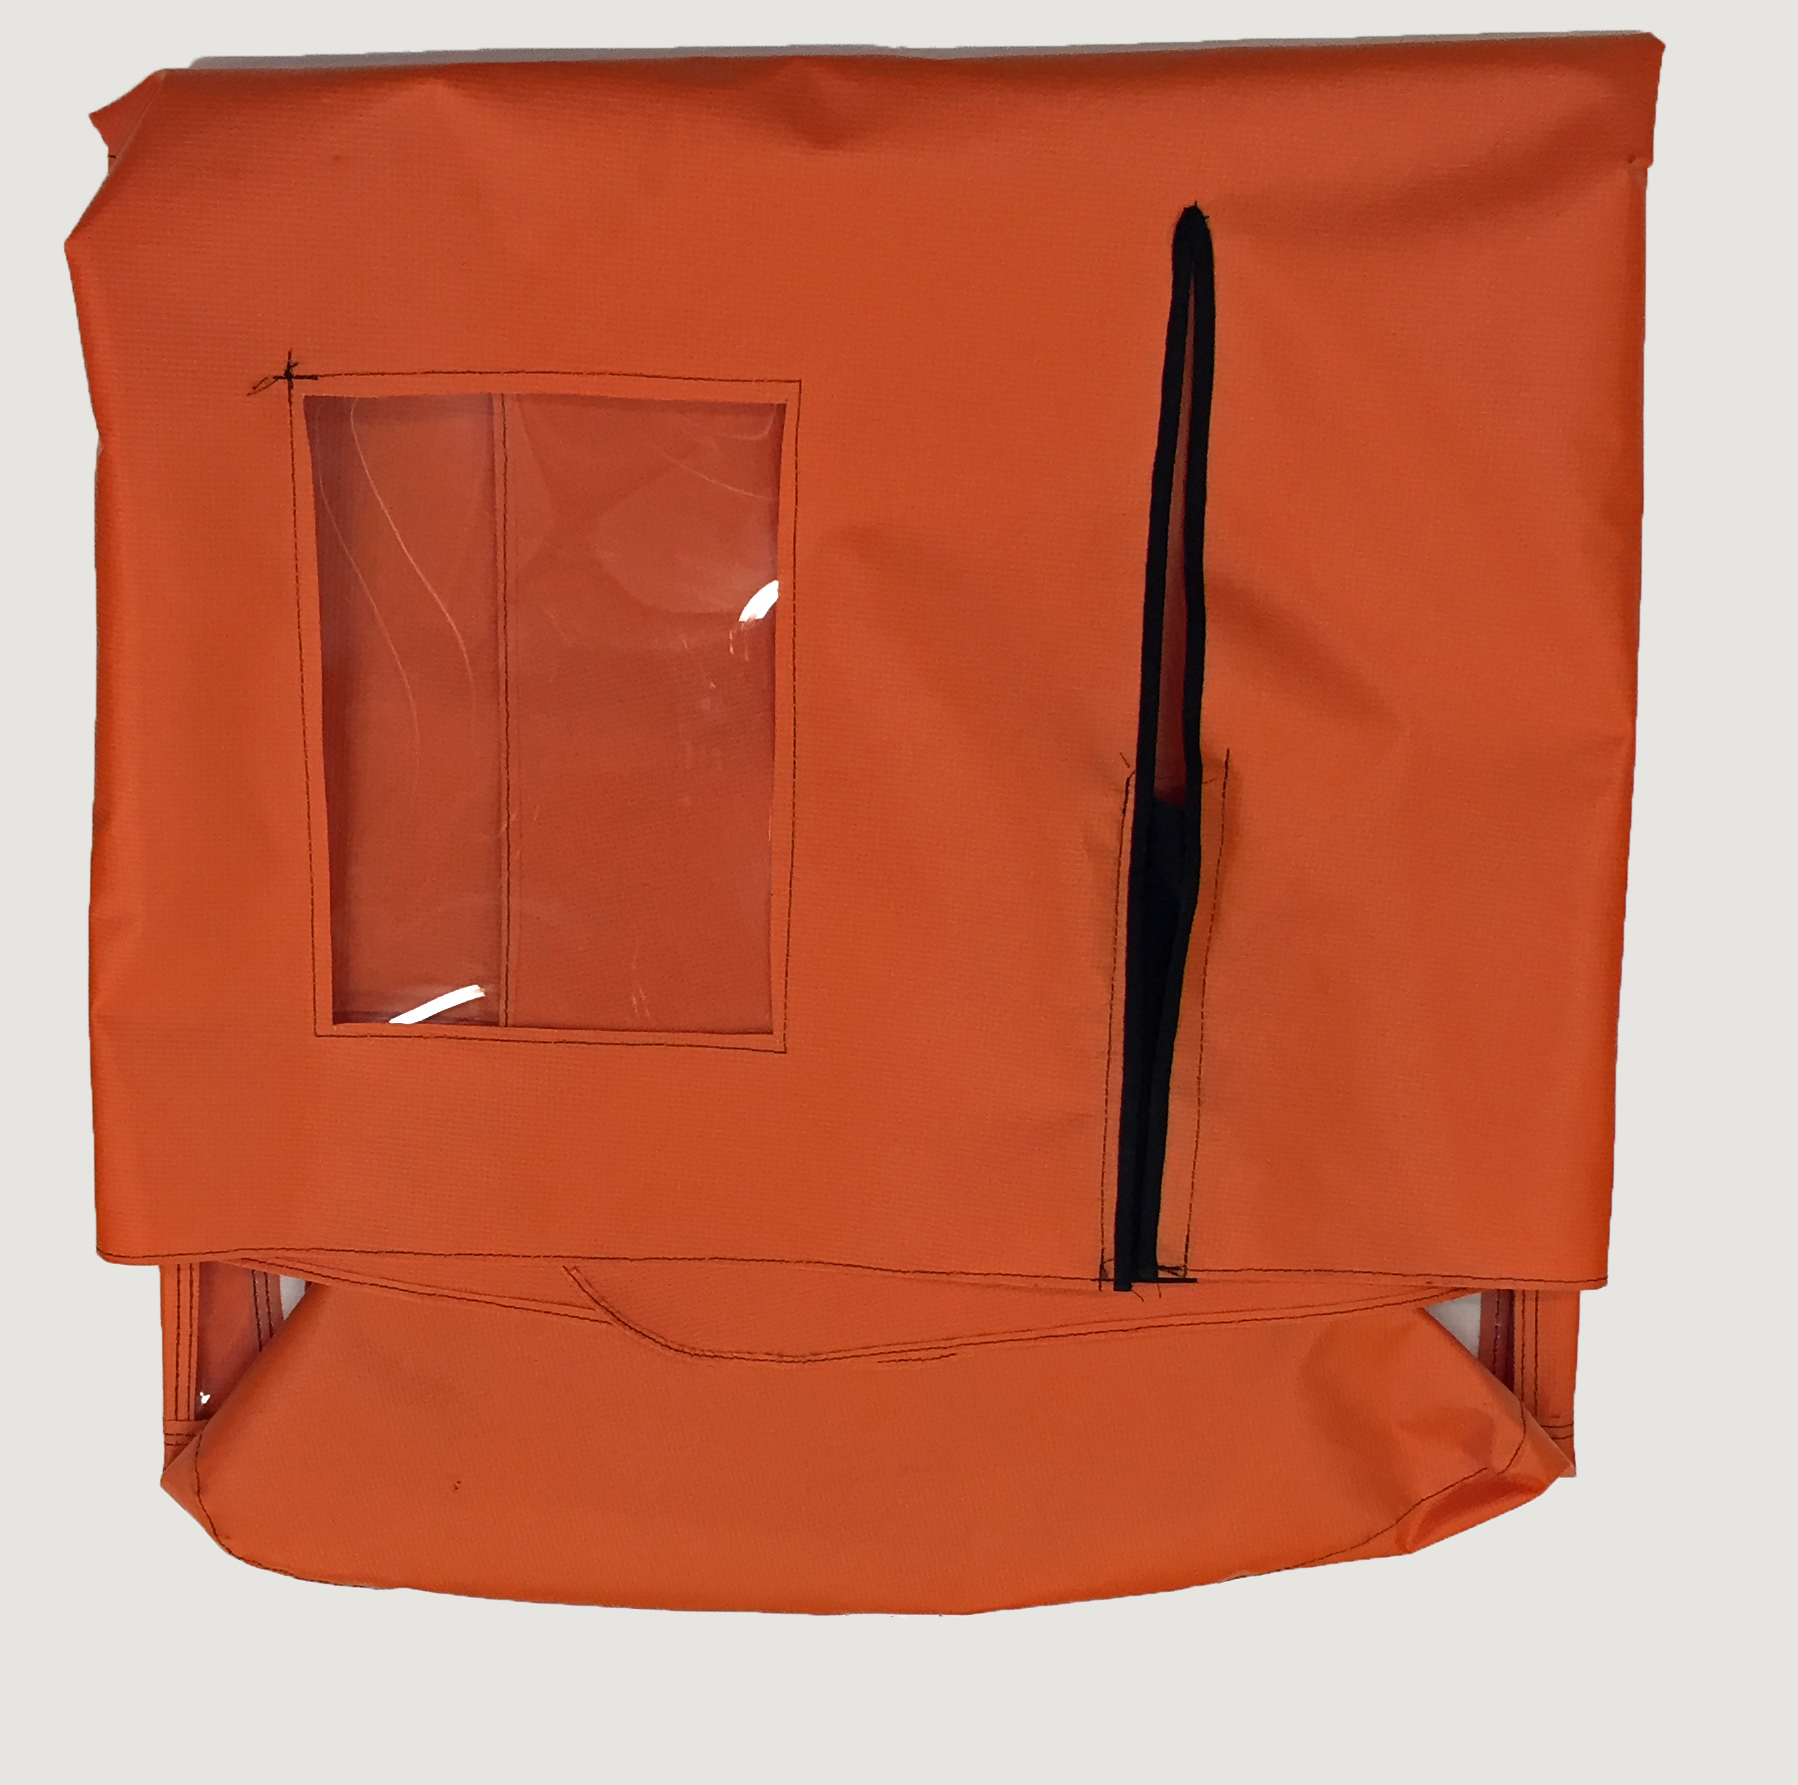 Vinyl Cover For Ariens Models 20103, 20123, 20150, and 20160